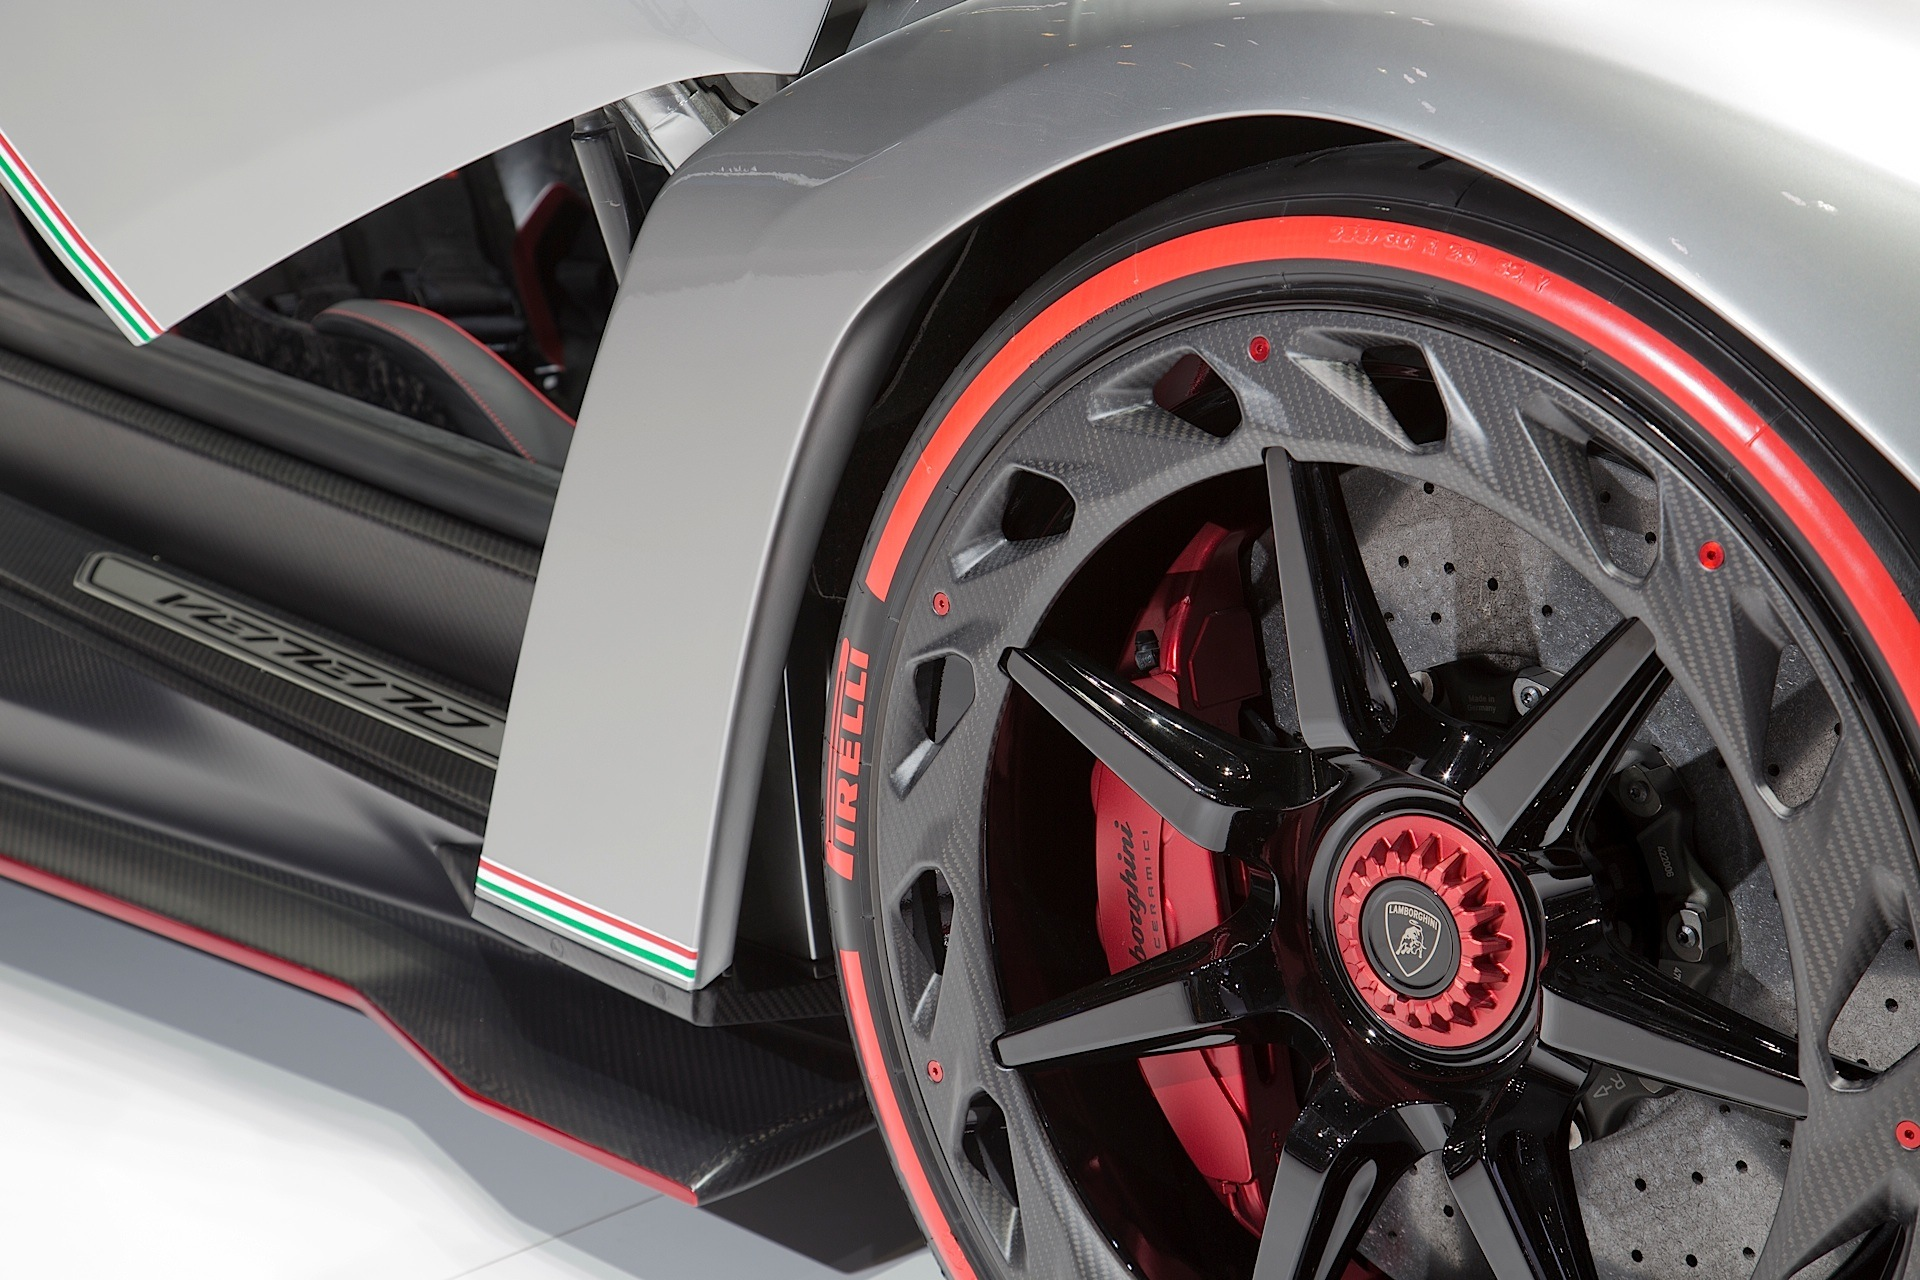 cake of show car the shows motor our kind at events birthday geneva centenario lamborghini unveiled news new